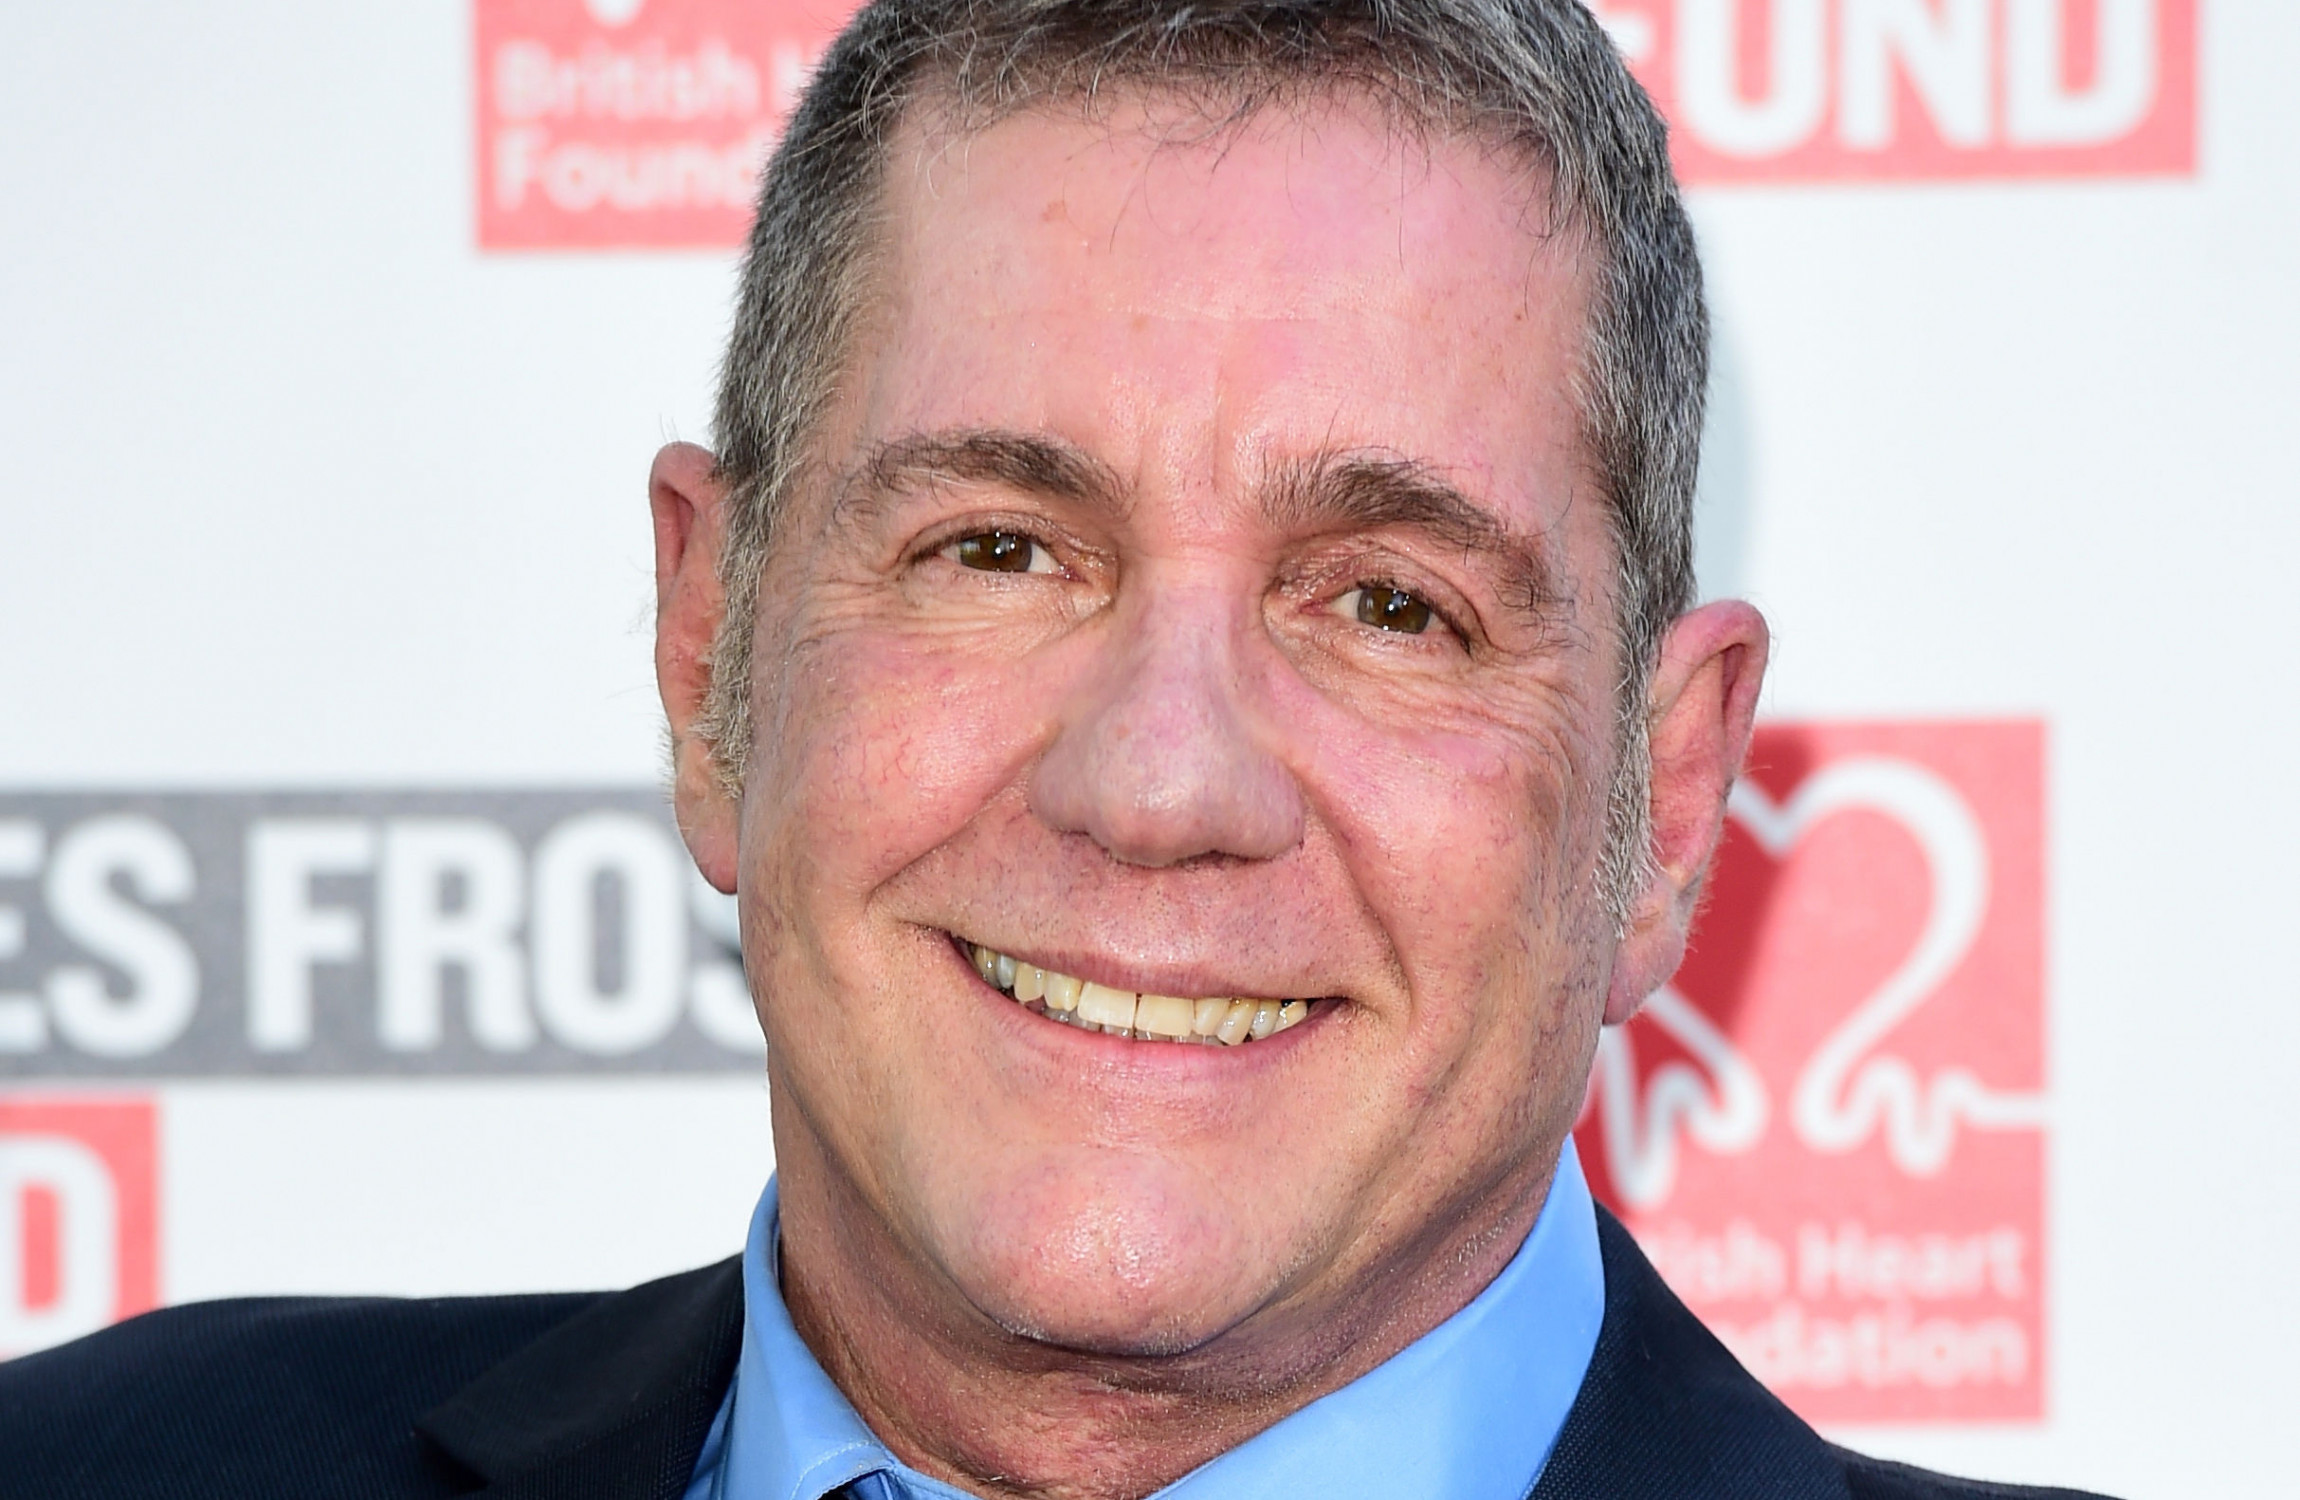 Dale Winton, TV presenter and radio DJ, dies aged 62